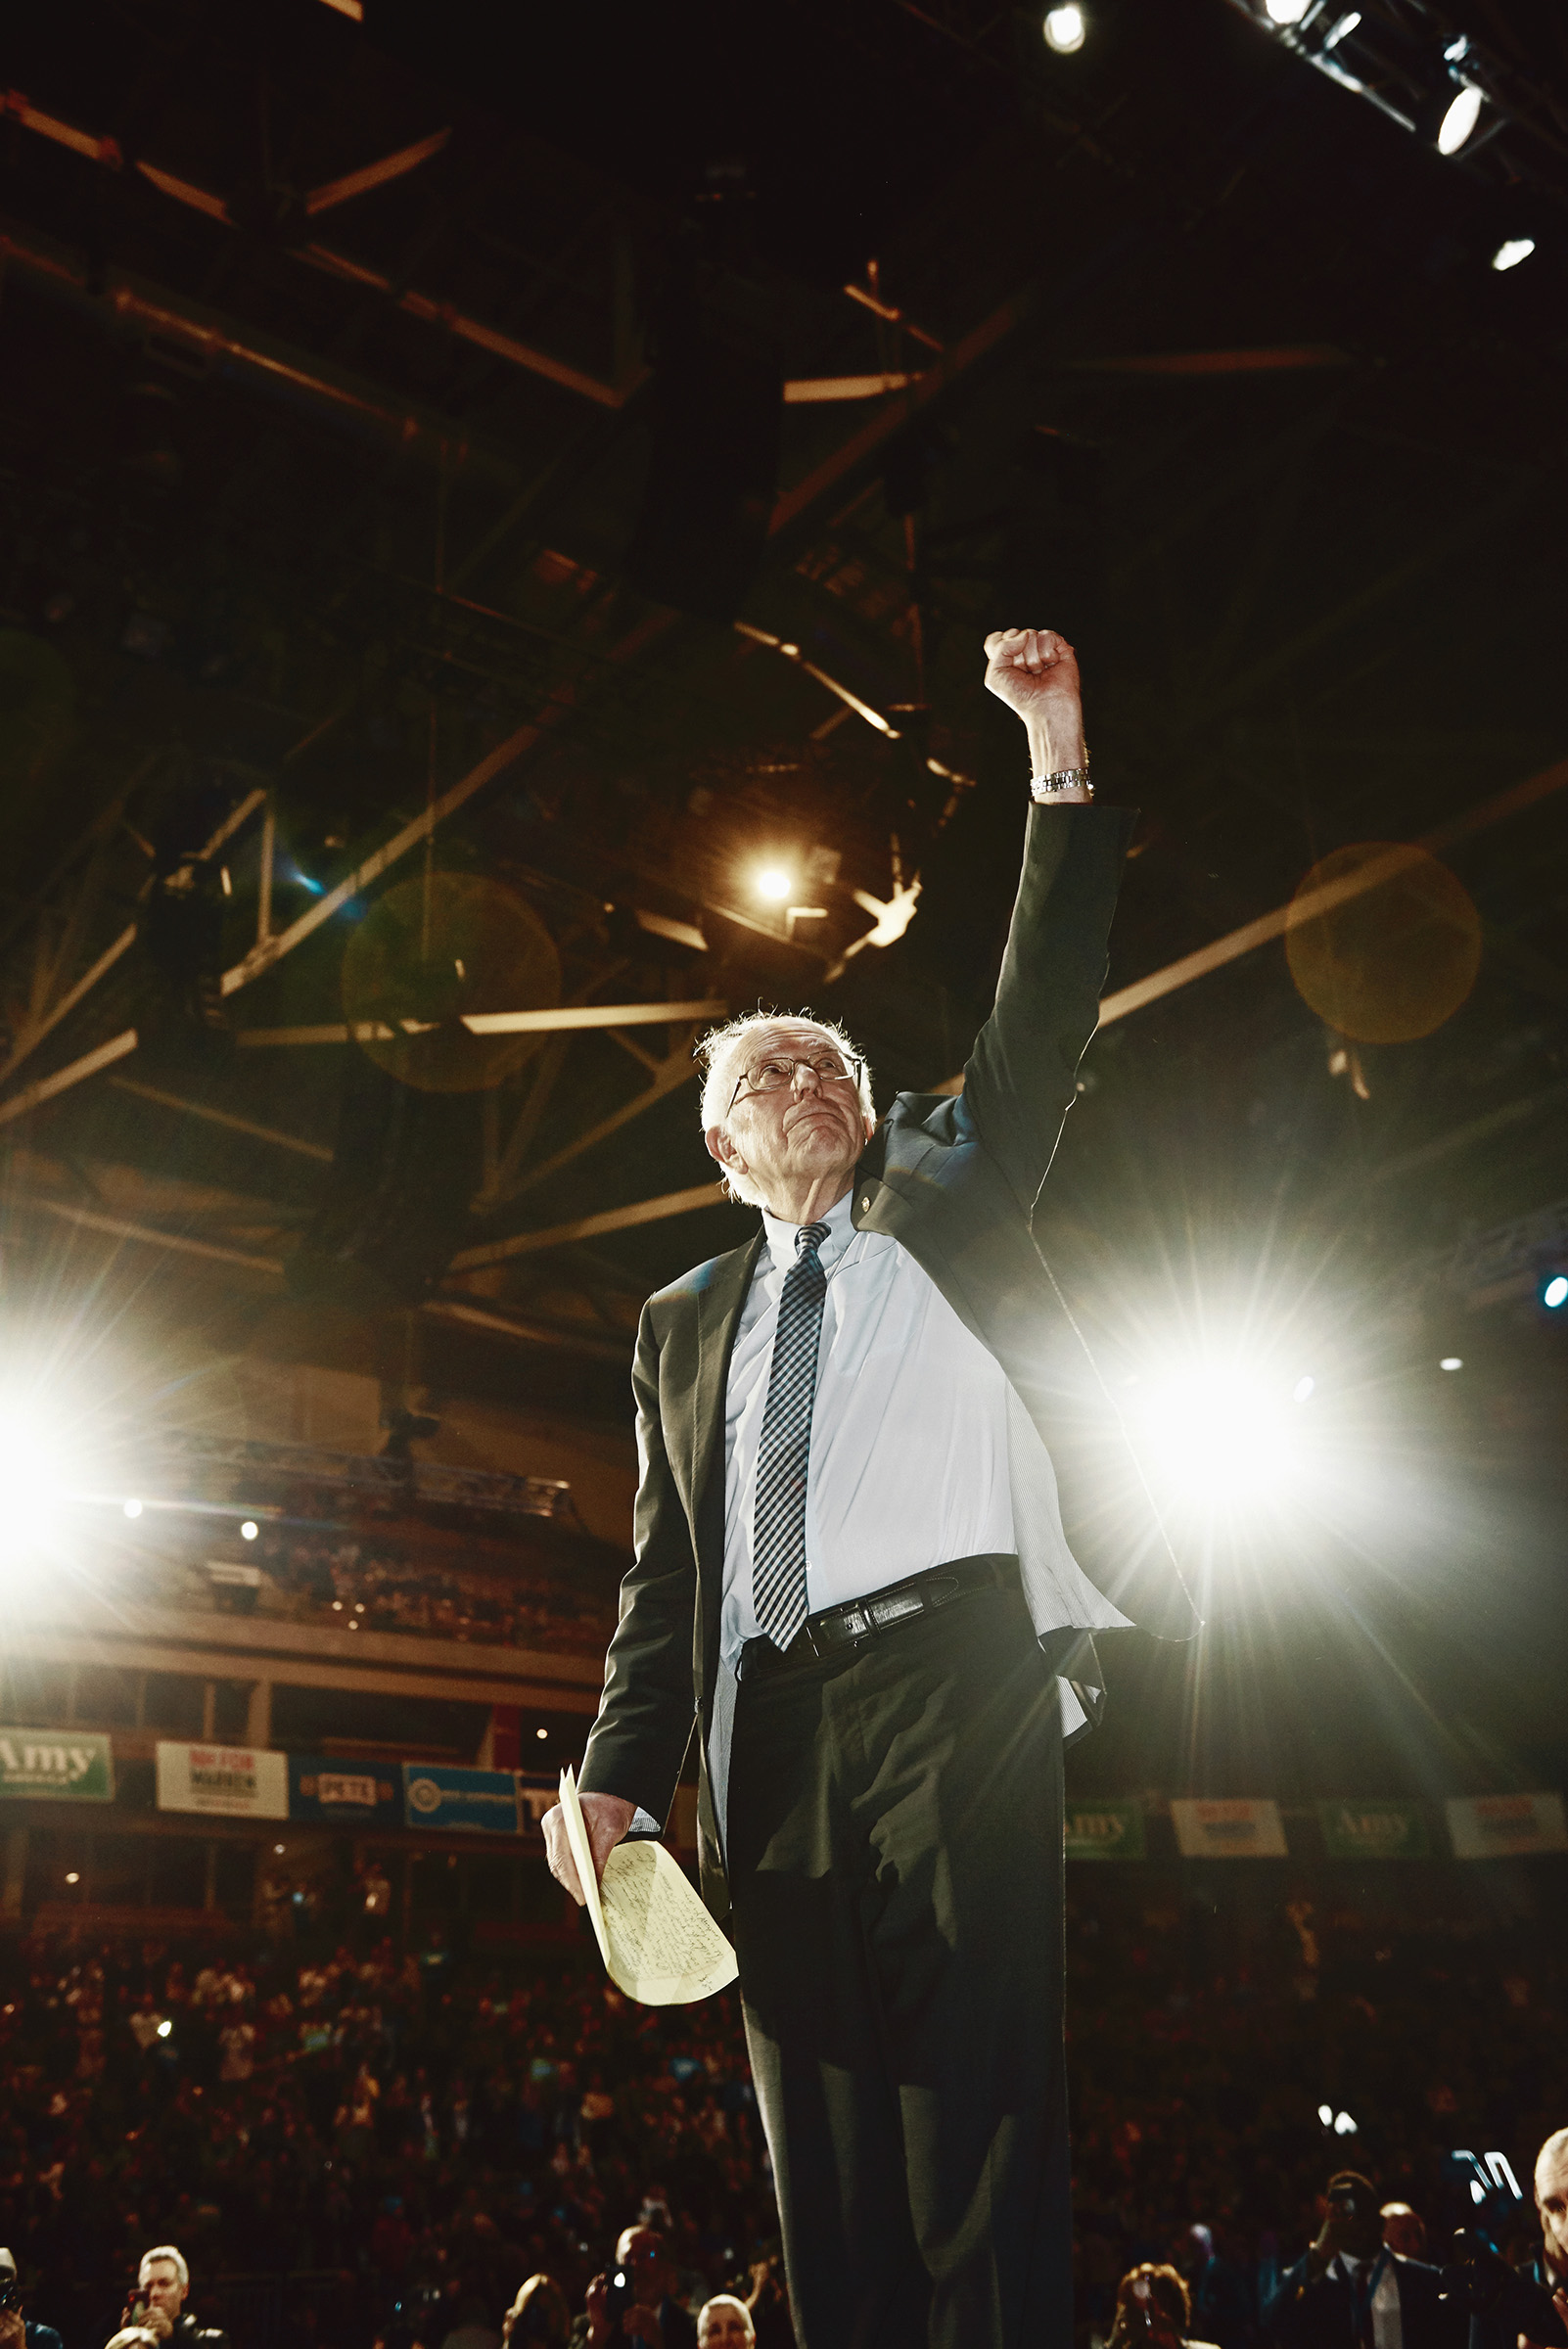 Senator Bernie Sanders at the New Hampshire Democratic Party's McIntyre-Shaheen 100 Club Event in Manchester, N.H. on Feb. 8, 2020.